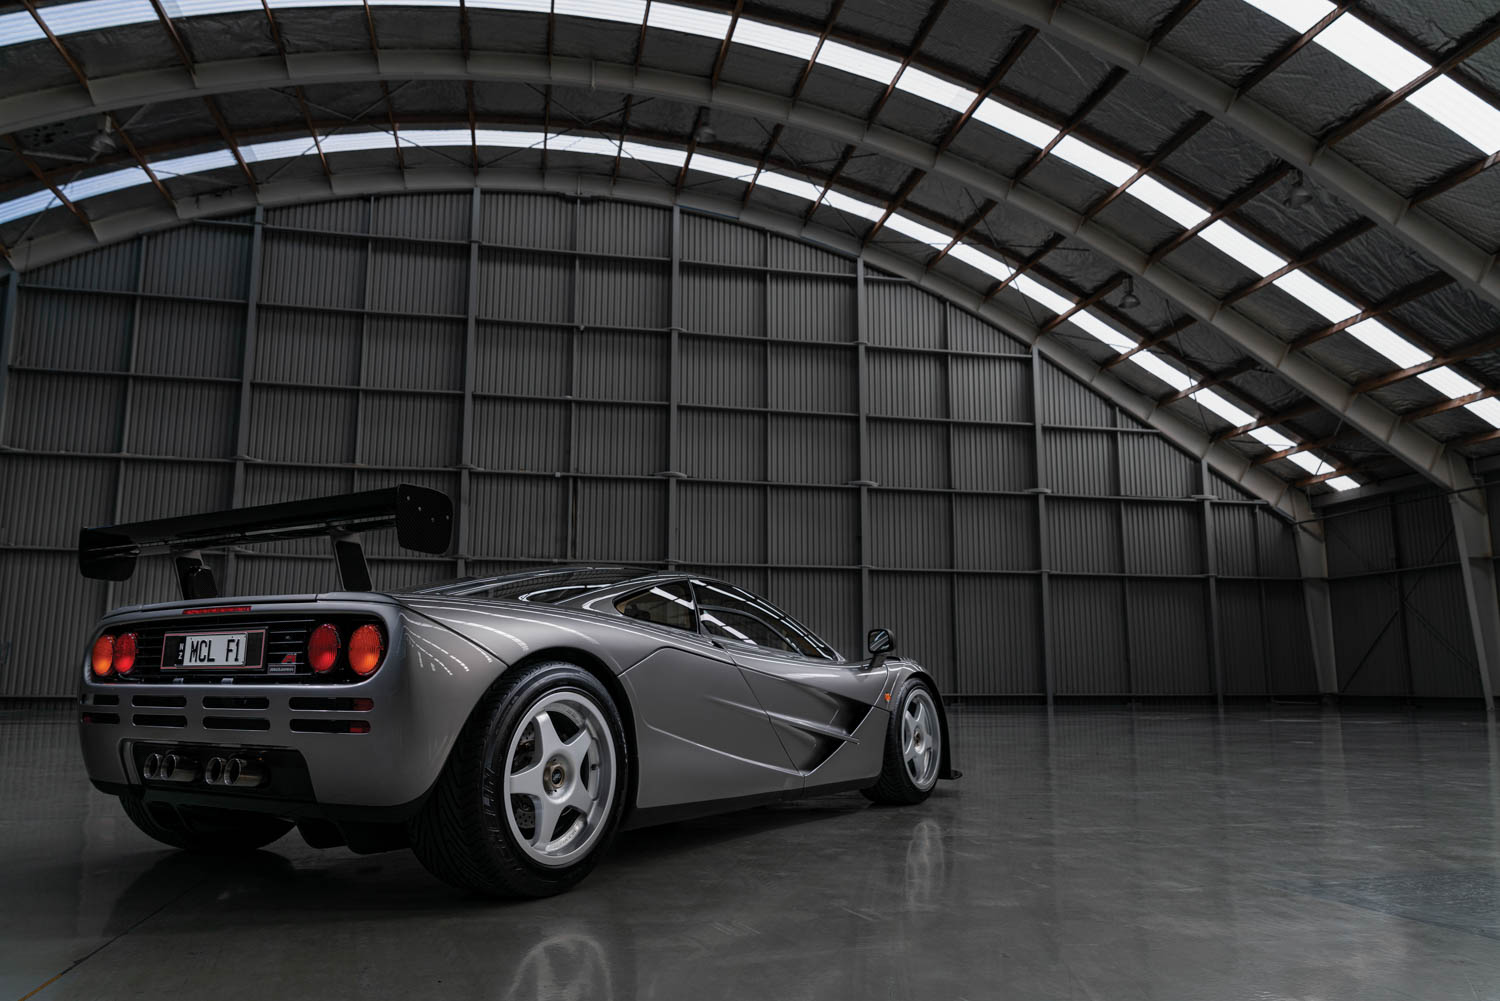 1994 McLaren F1 'LM-Specification' rear 3/4